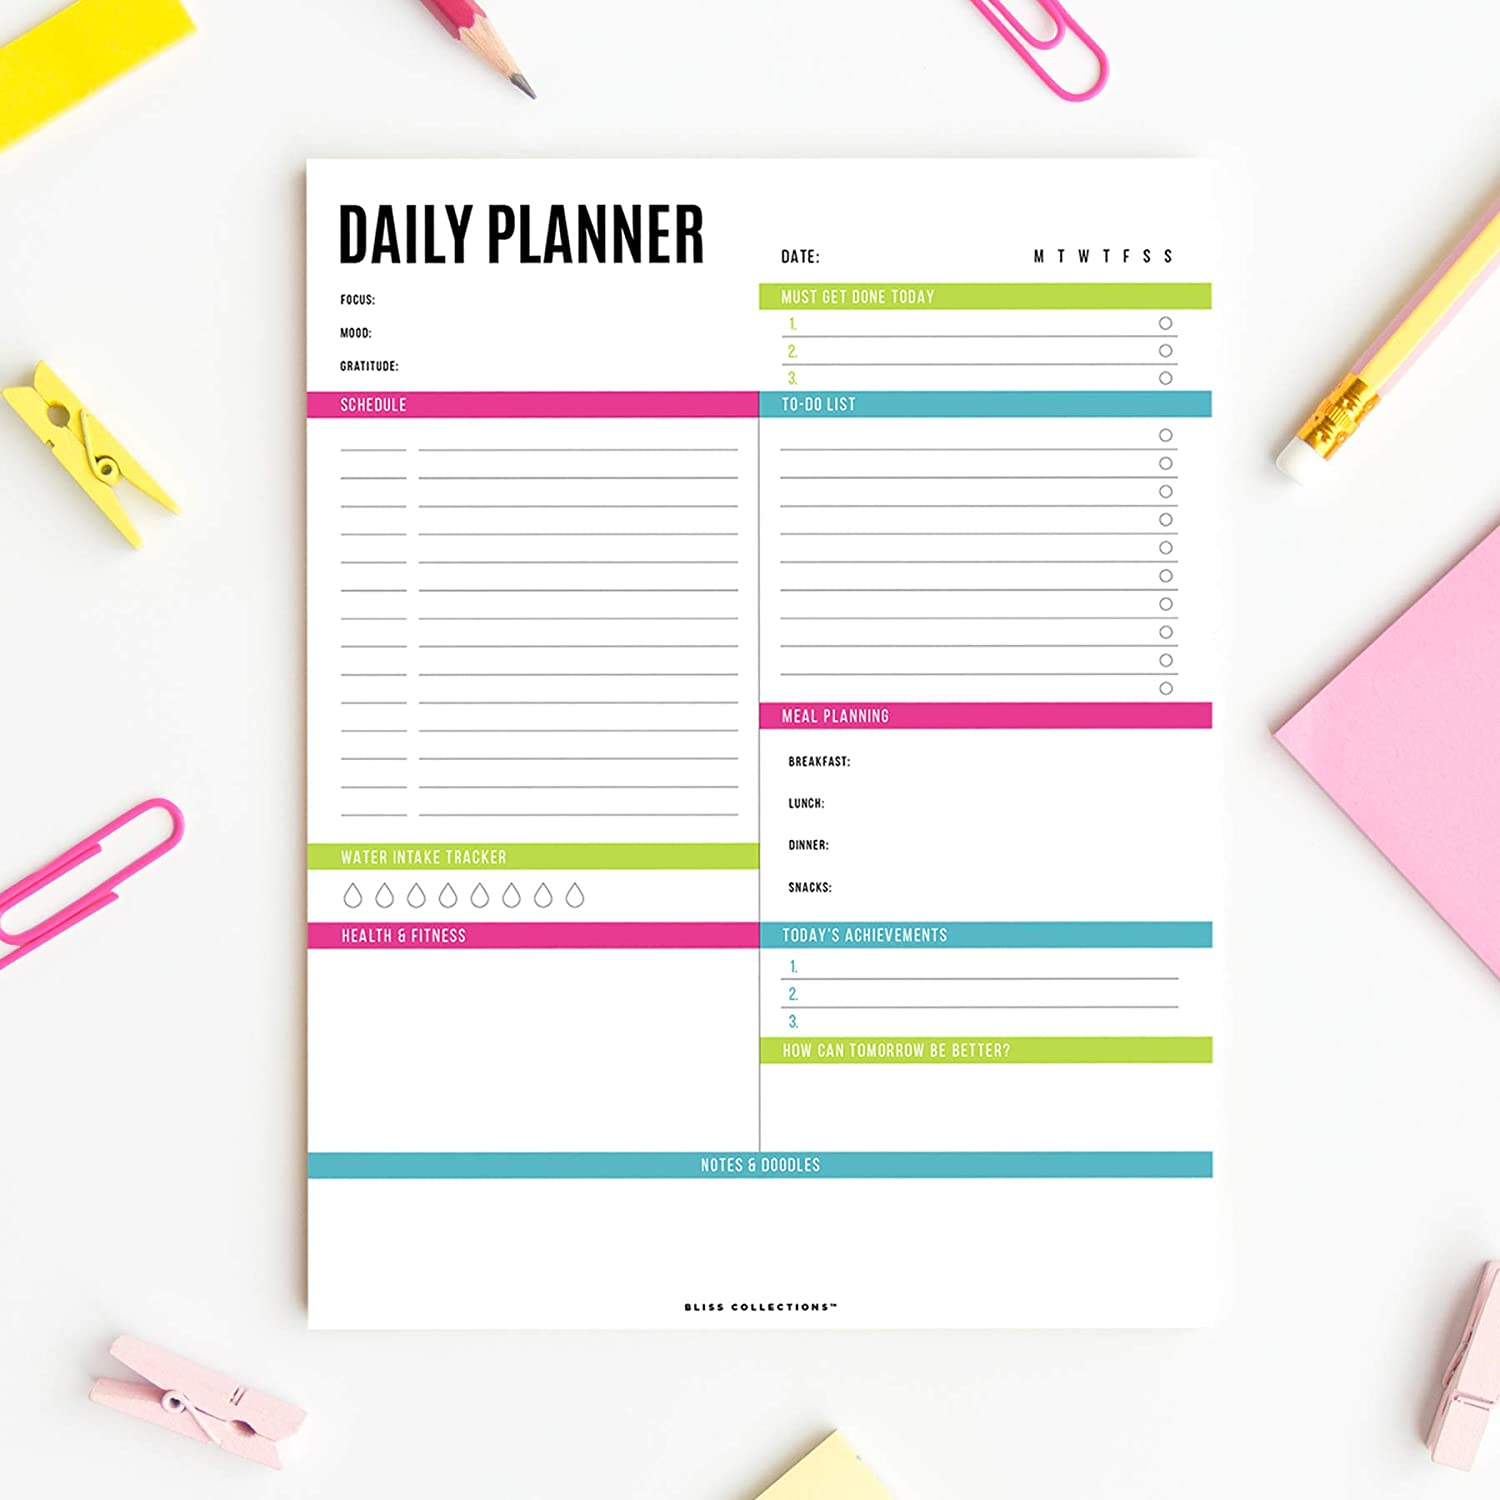 Productivity Tracker Notes Ideas Scheduler Vibrant Calendar Bliss Collections Daily Planner with 50 Undated 8.5 x 11 Tear-Off Sheets Organize Tasks To Do Lists Goals Organizer Meal Prep